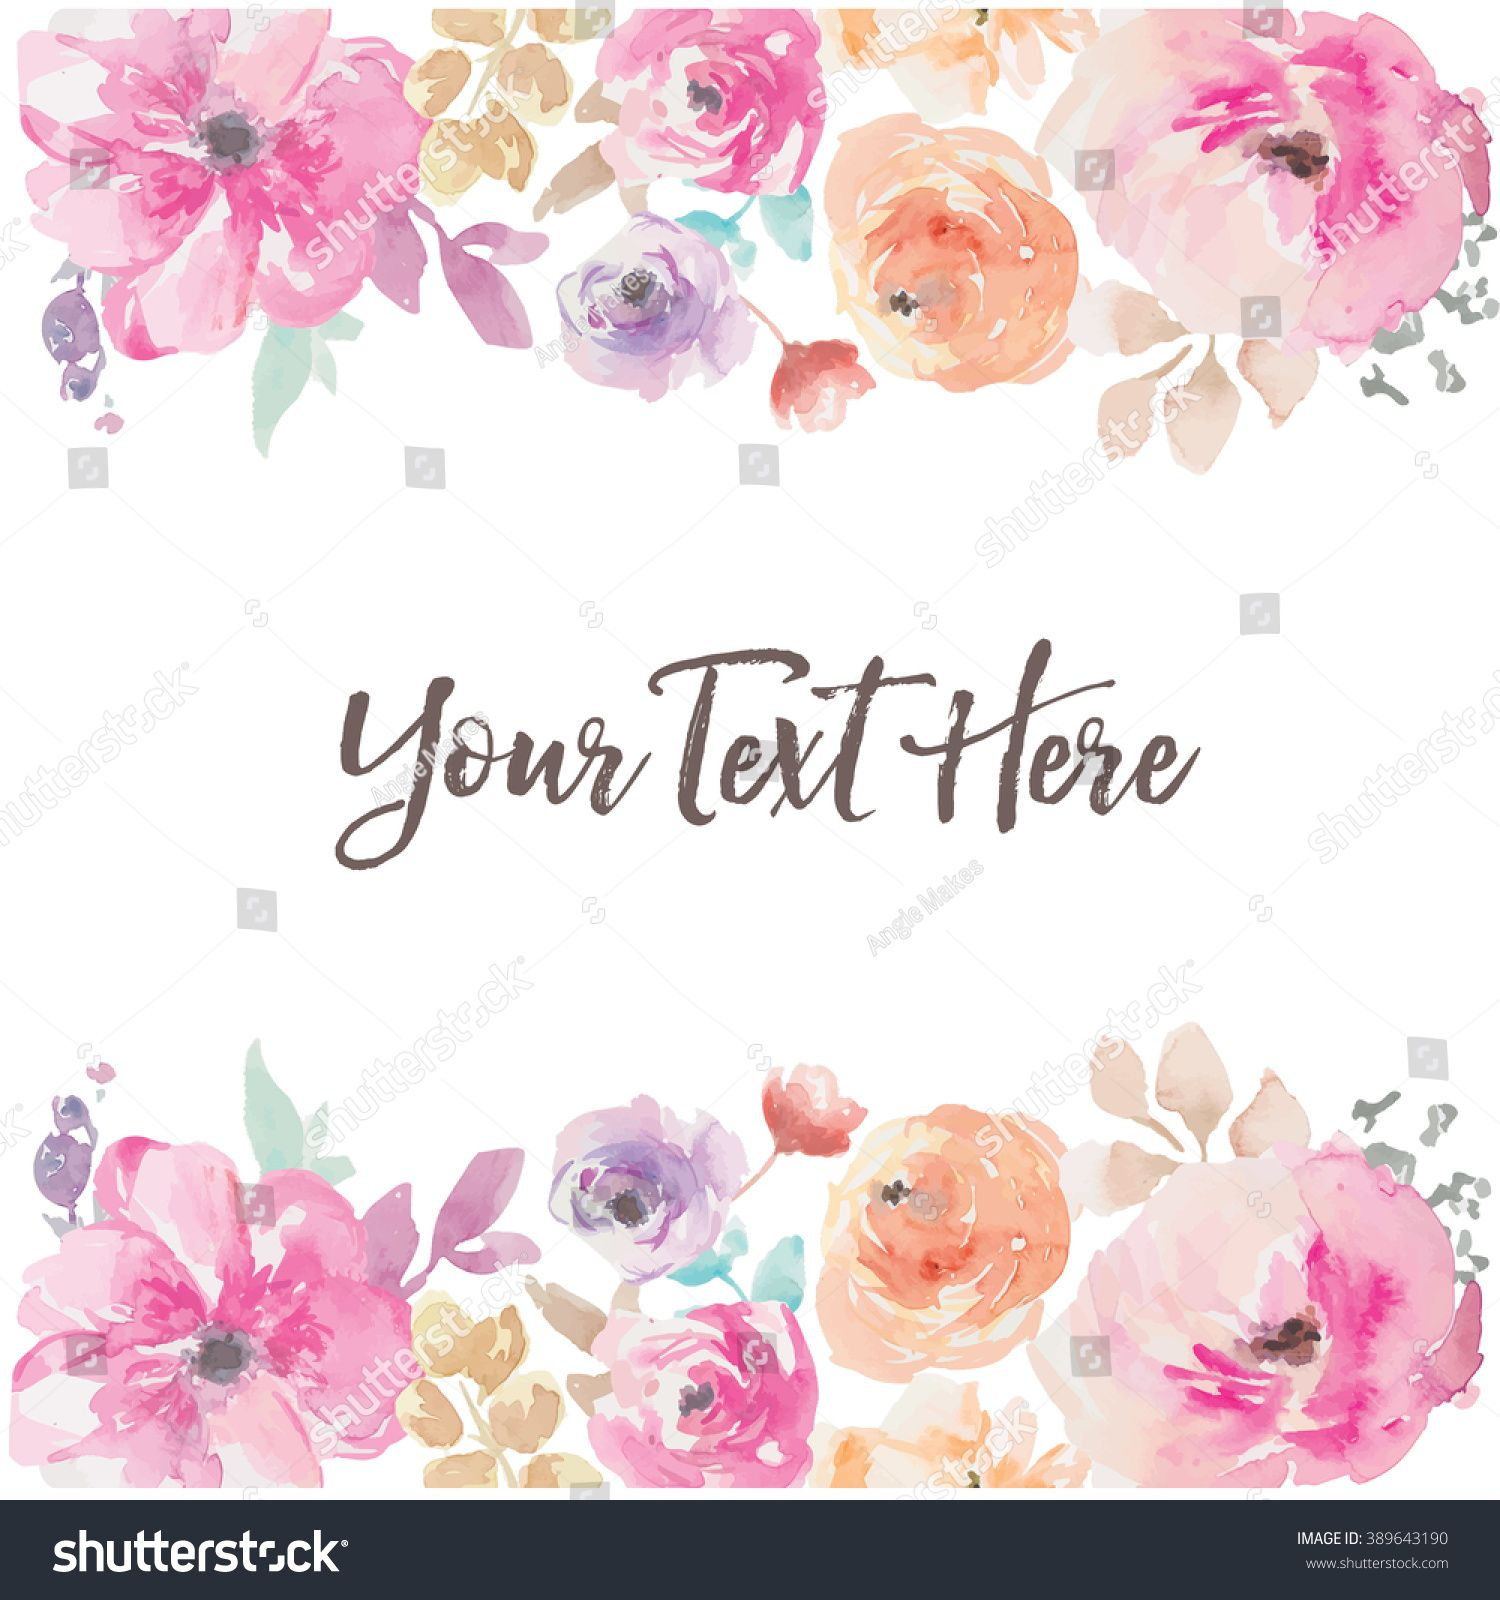 Watercolor Flower Vector Background Border Fondos De Flores